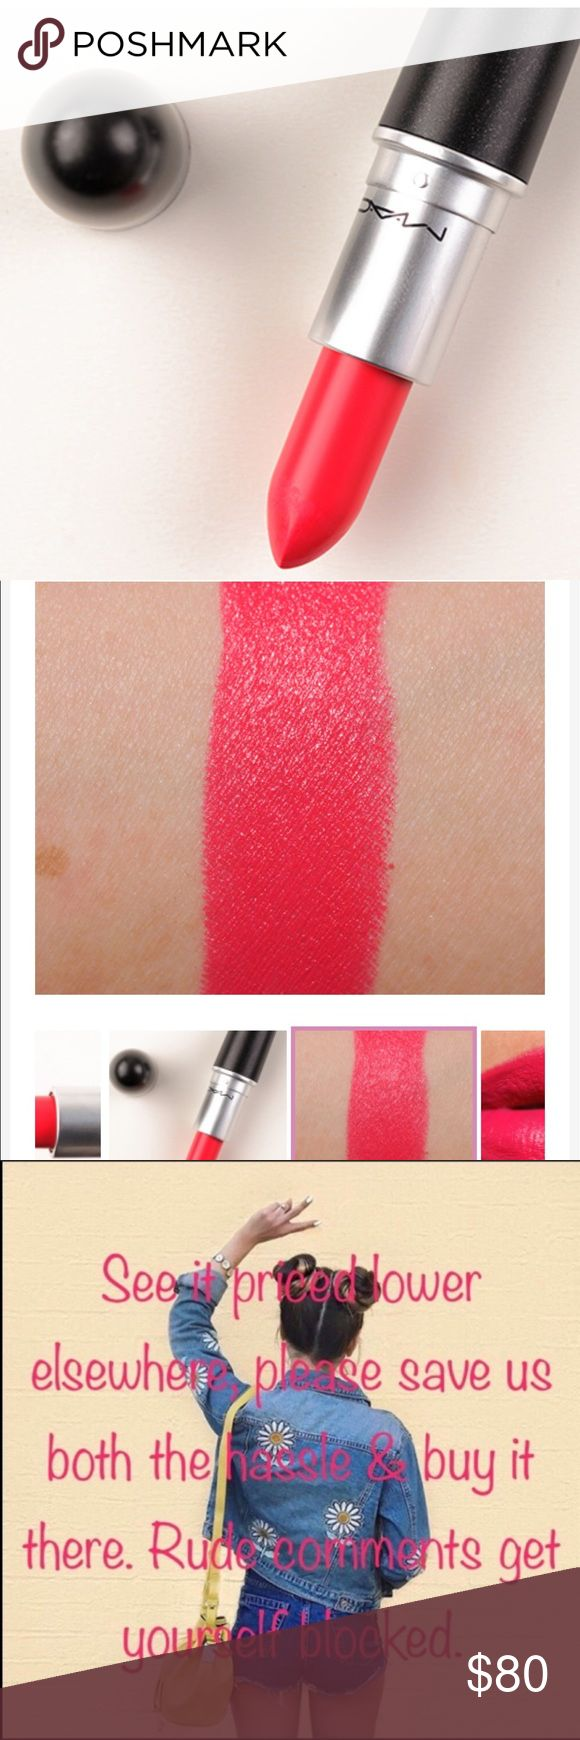 MAC Party Parrot warm coral natural finish RARE Brand new, no box. Has been in storage with all my lipstick in my makeup box. Never used. HARD TO FIND. RARE. LIMITED EDITION. Price is firm please. AUTHENTIC! MAC Cosmetics Makeup Lipstick